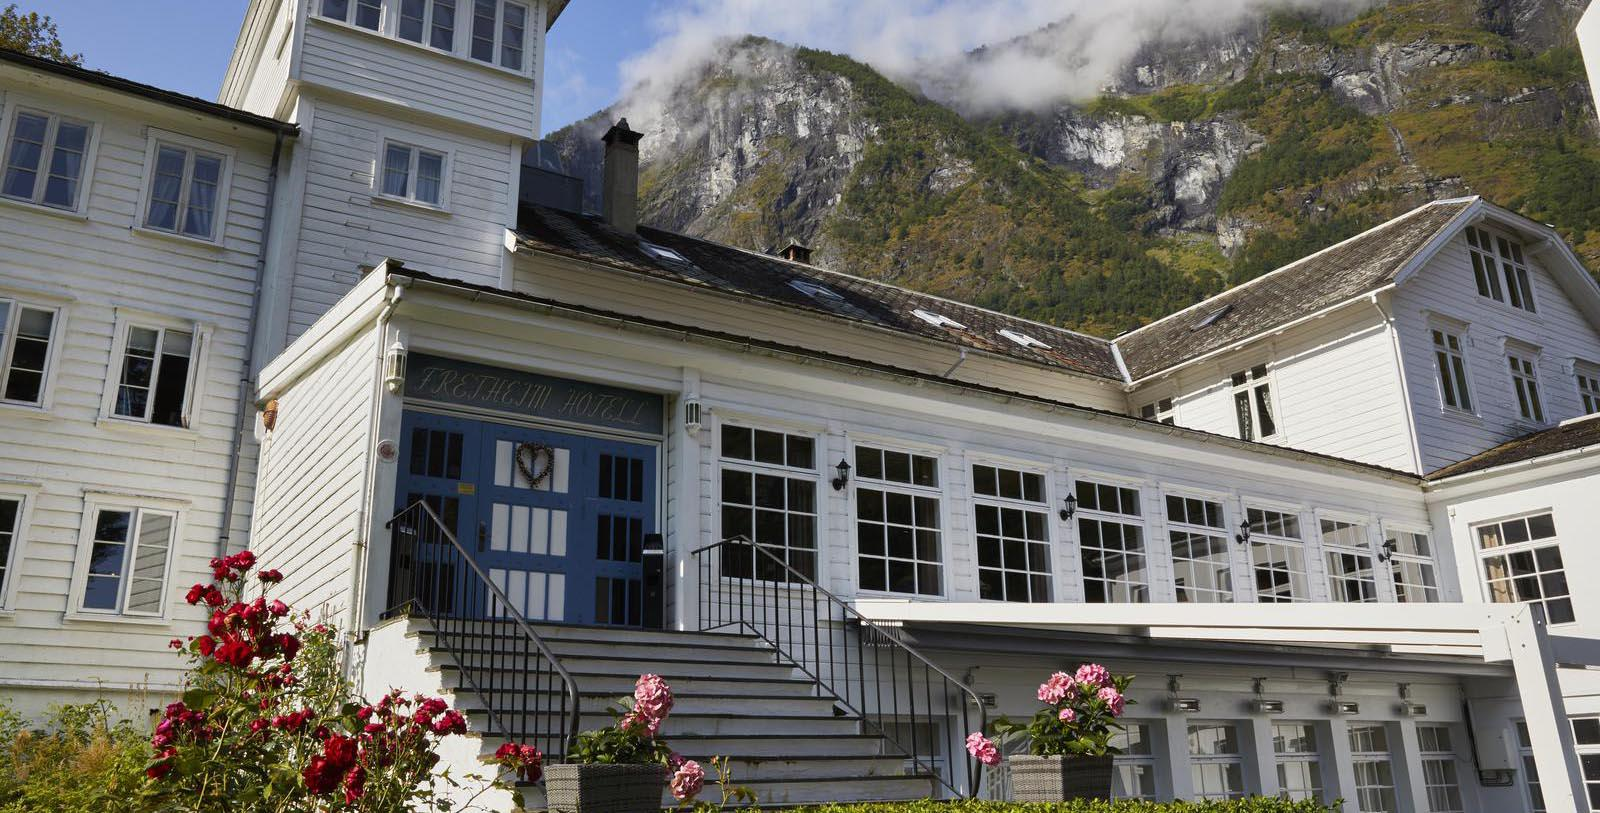 Image of Fretheim Hotel, Hotel Exterior, Flam, Norway, 1870, Member of Historic Hotels Worldwide, Special Offers, Discounted Rates, Families, Romantic Escape, Honeymoons, Anniversaries, Reunions